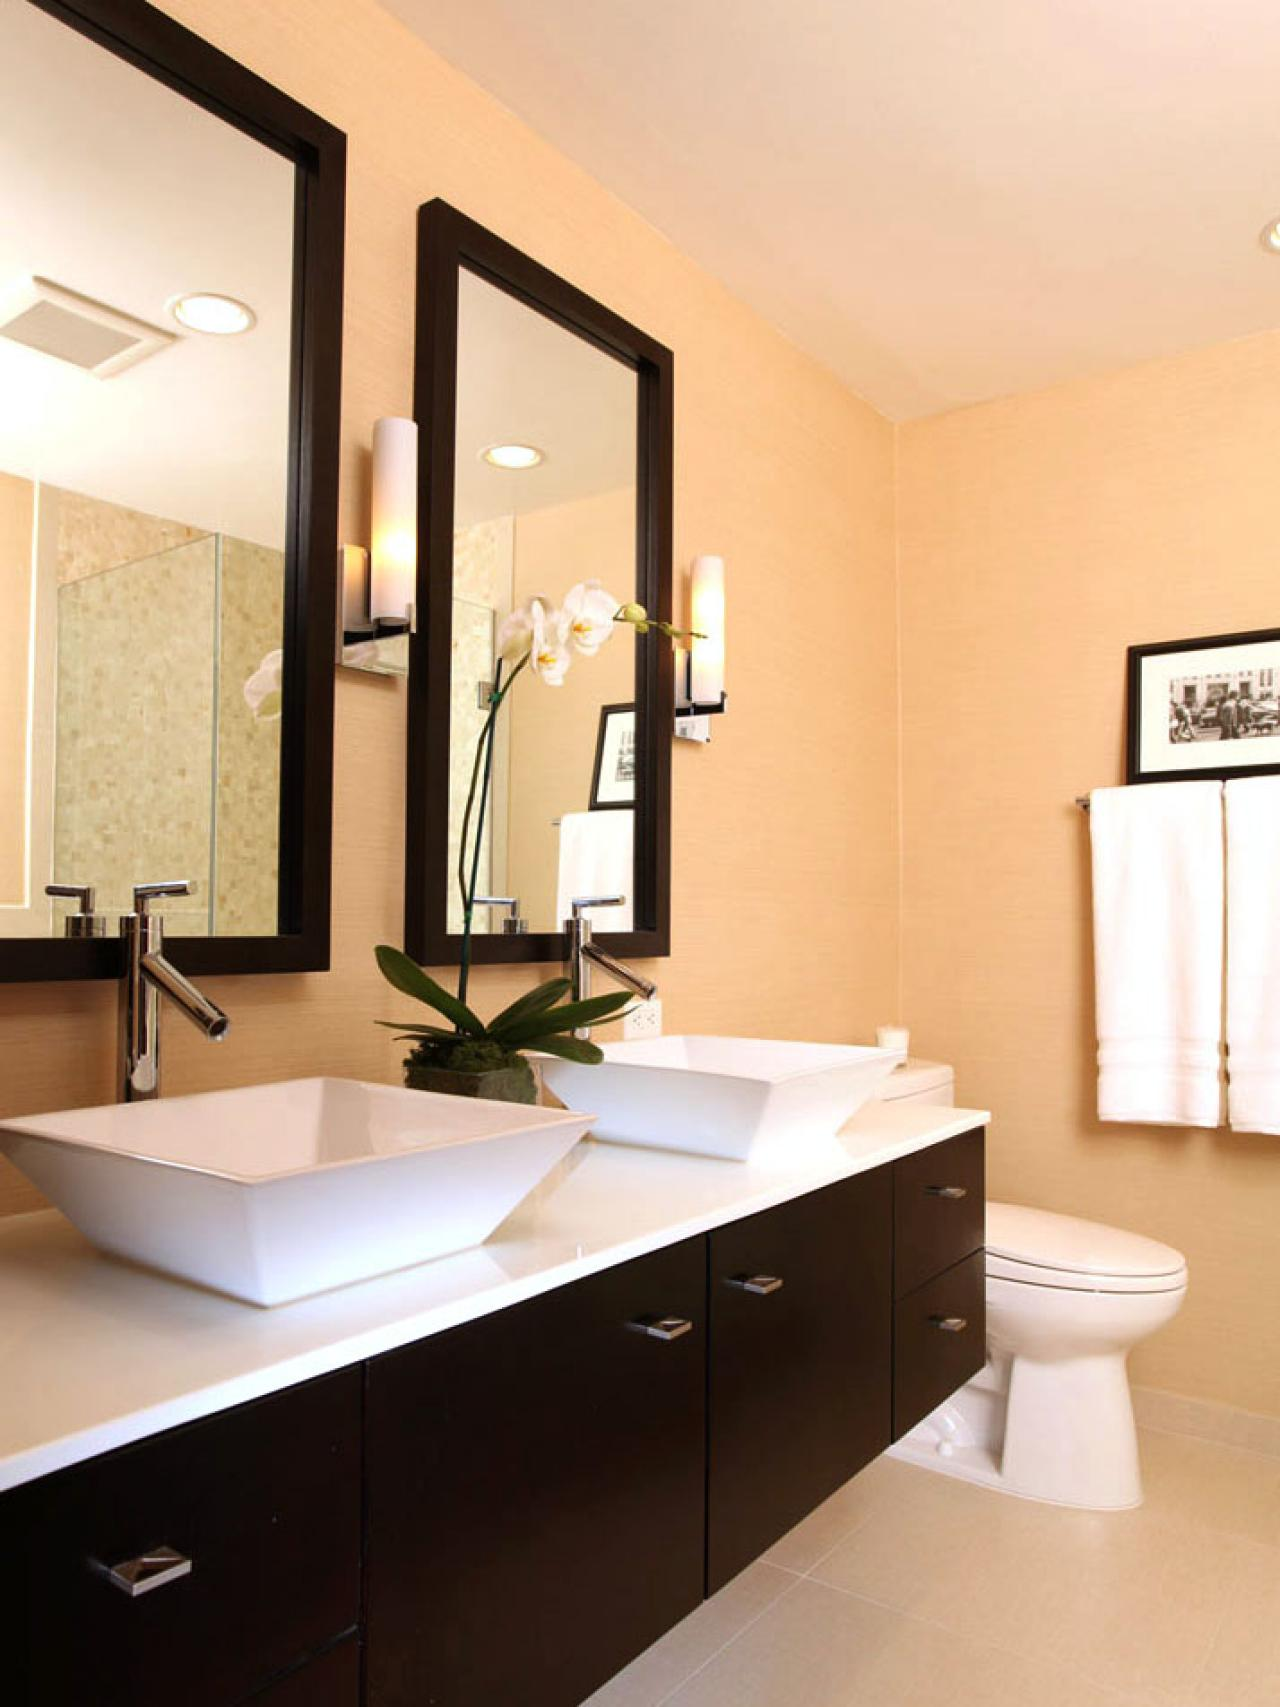 Bathroom Remodel Ideas Traditional traditional bathroom designs: pictures & ideas from hgtv | hgtv